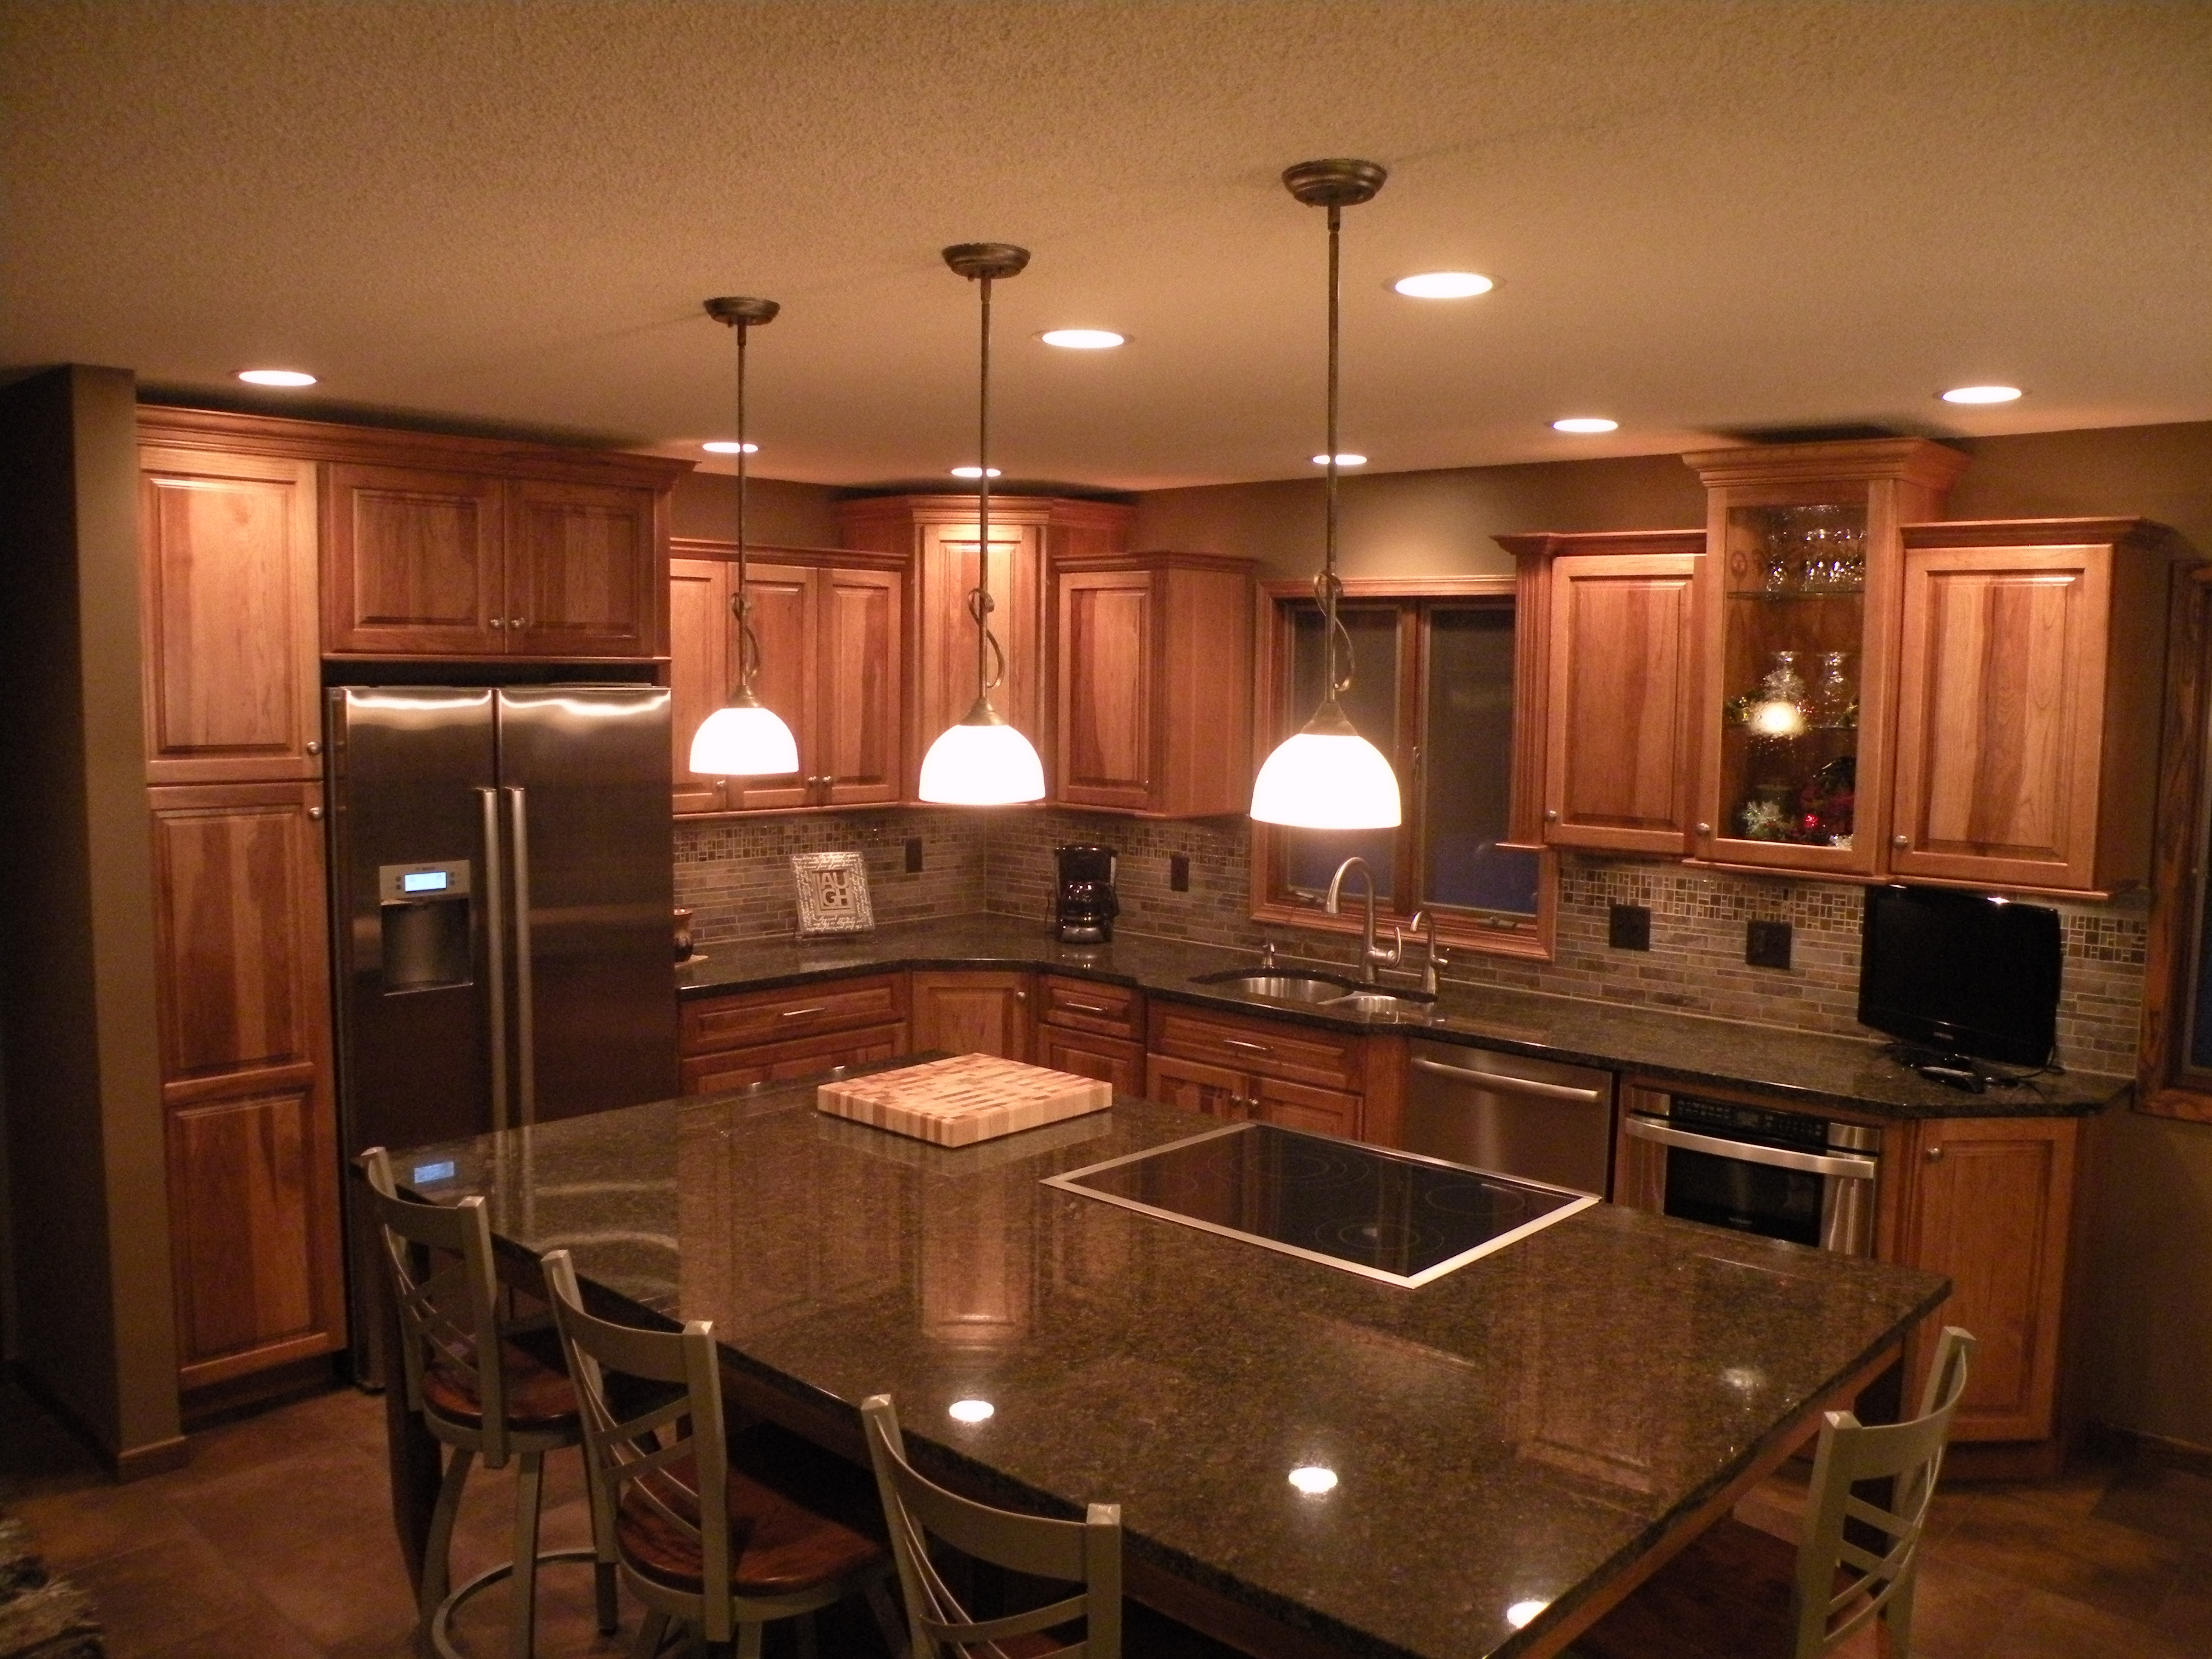 Kraftmaid Hickory Sunset Marquette Cabinetry Kitchens